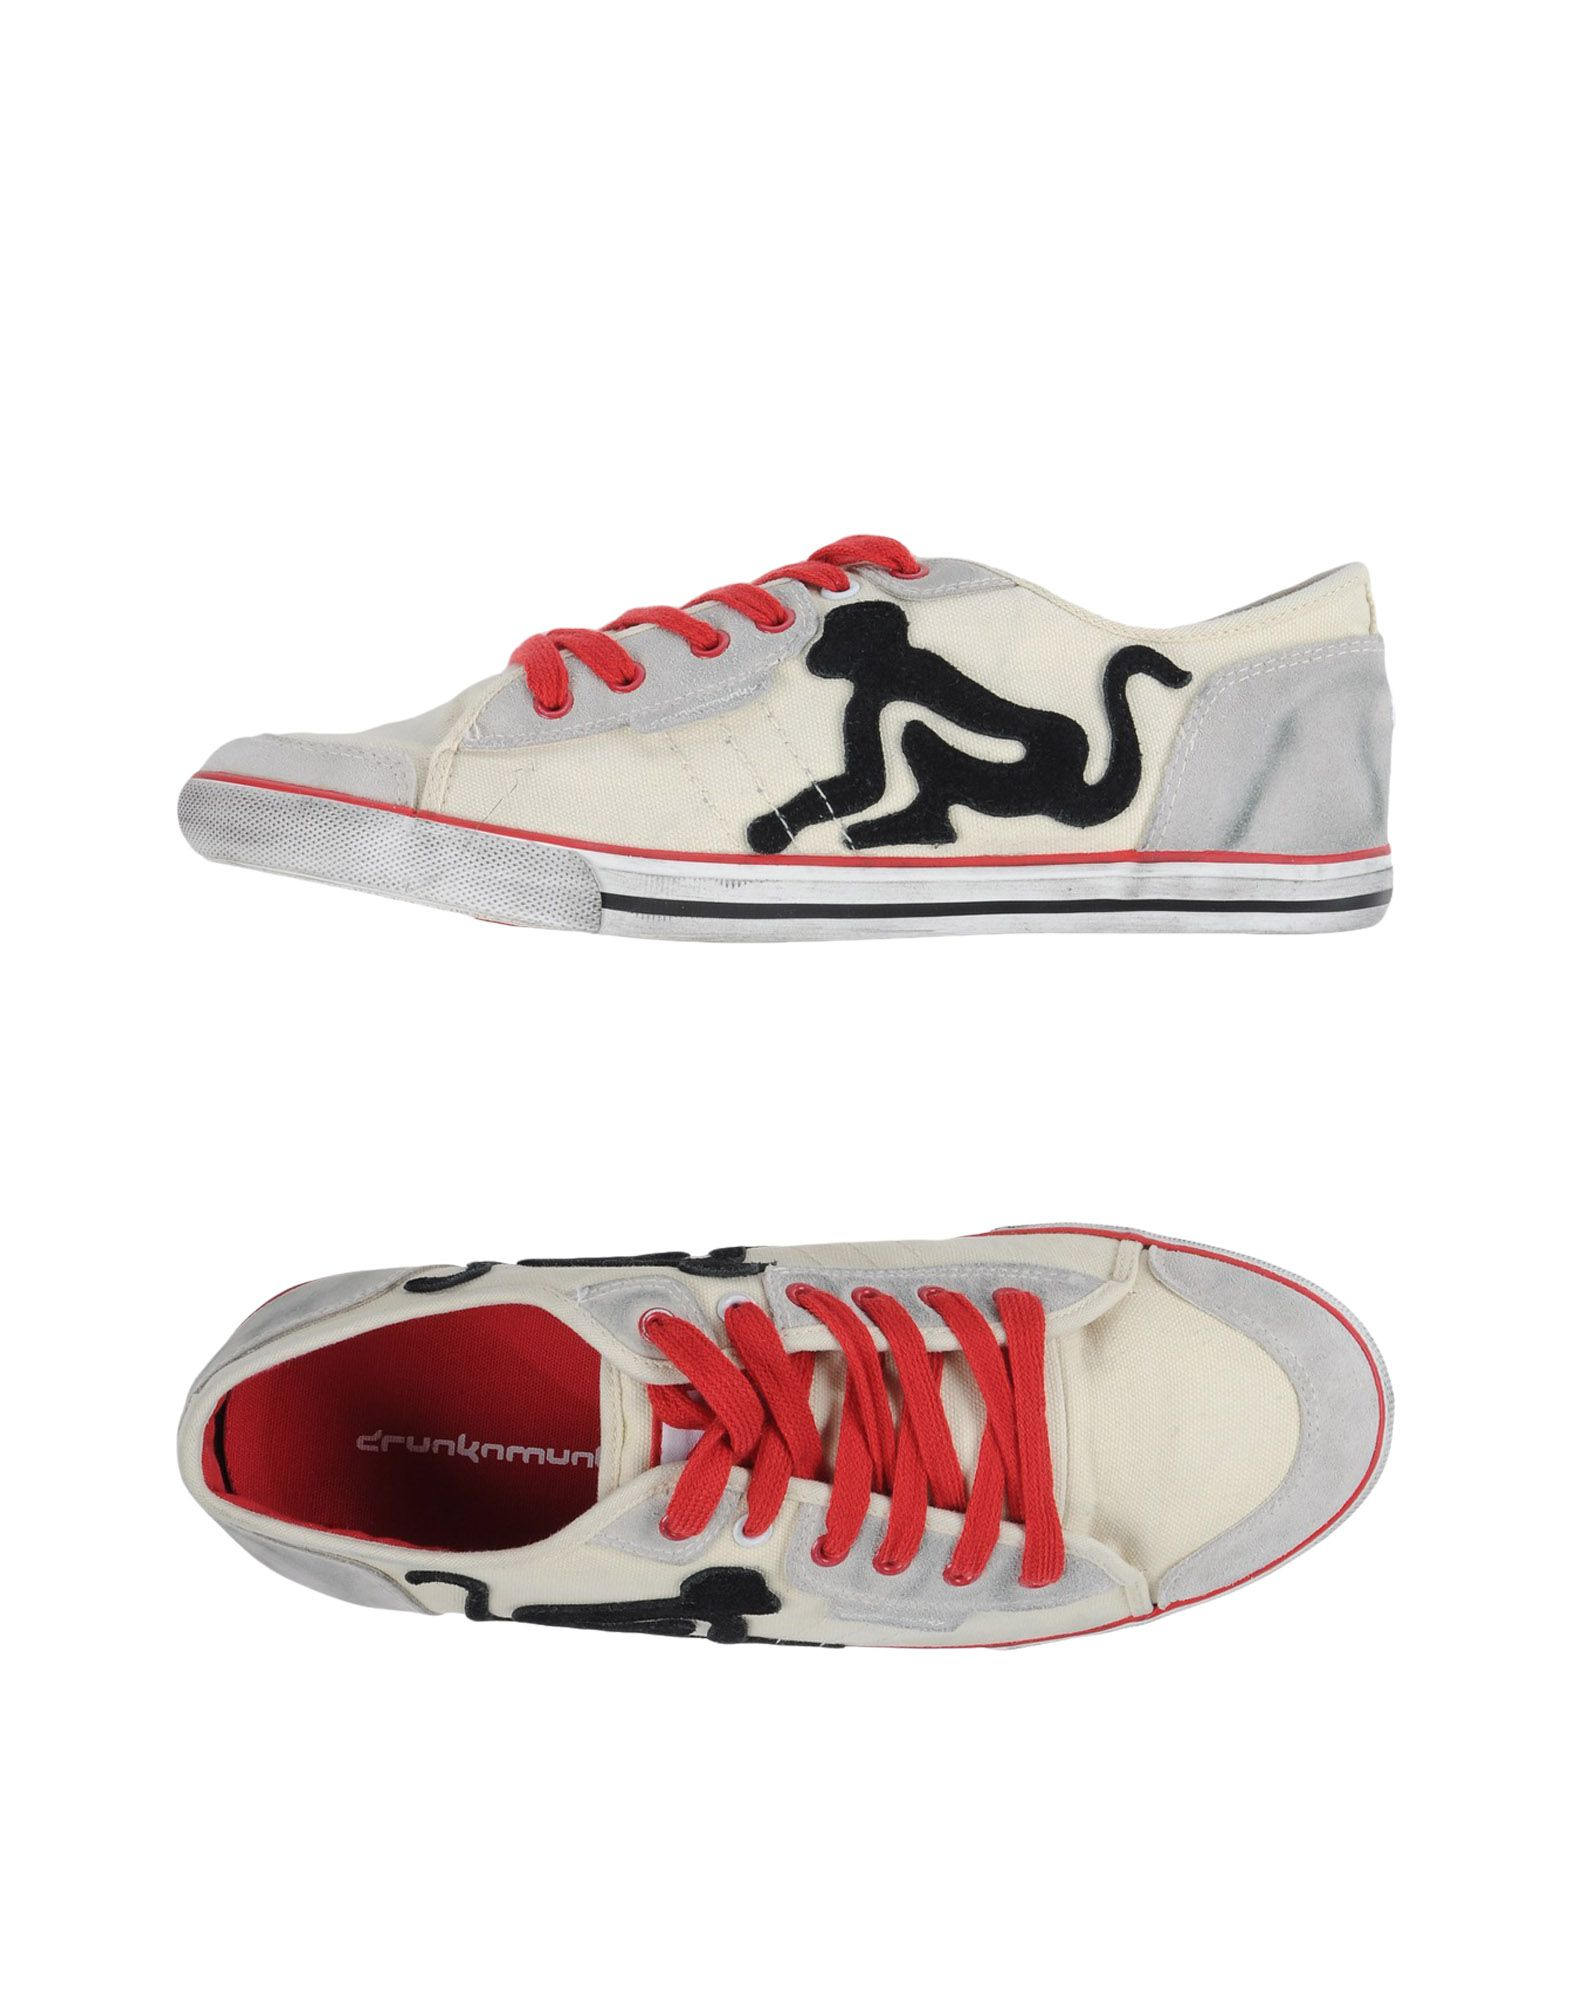 Moda Sneakers Drunknmunky Uomo - 11344748VE